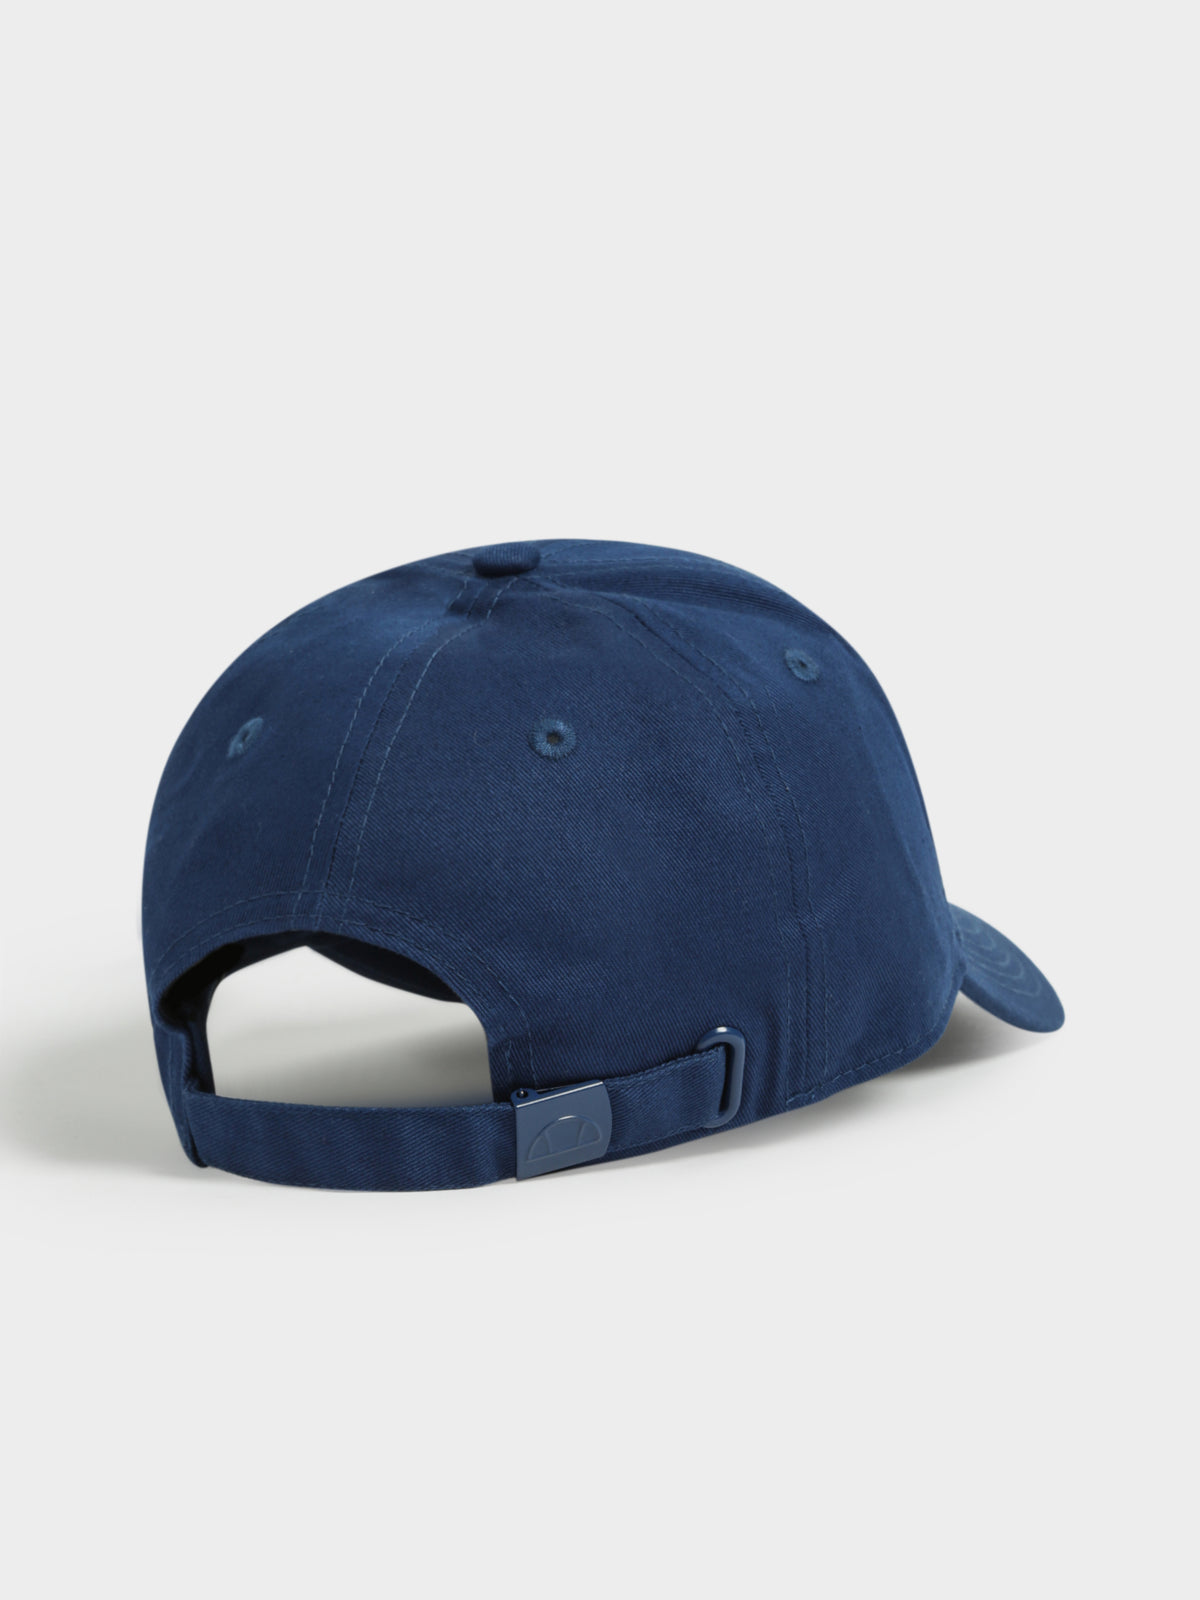 Dazara Cap in Navy Blue